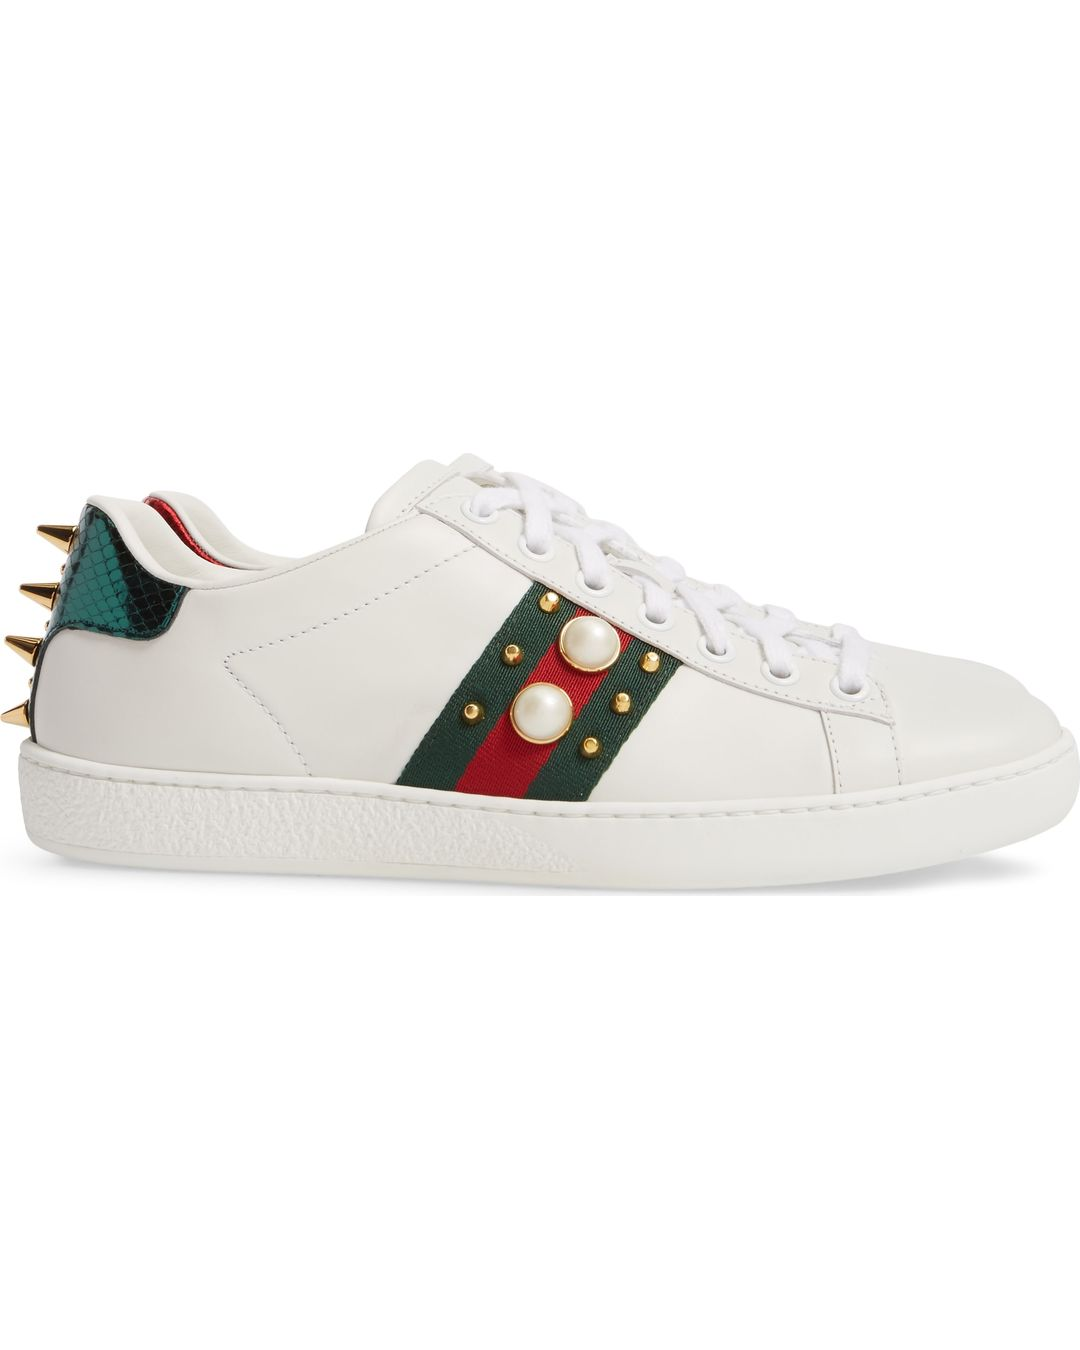 c77decb2e41 Where to Buy. Nordstrom. Men s Gucci New Ace Webbed Low Top Sneaker